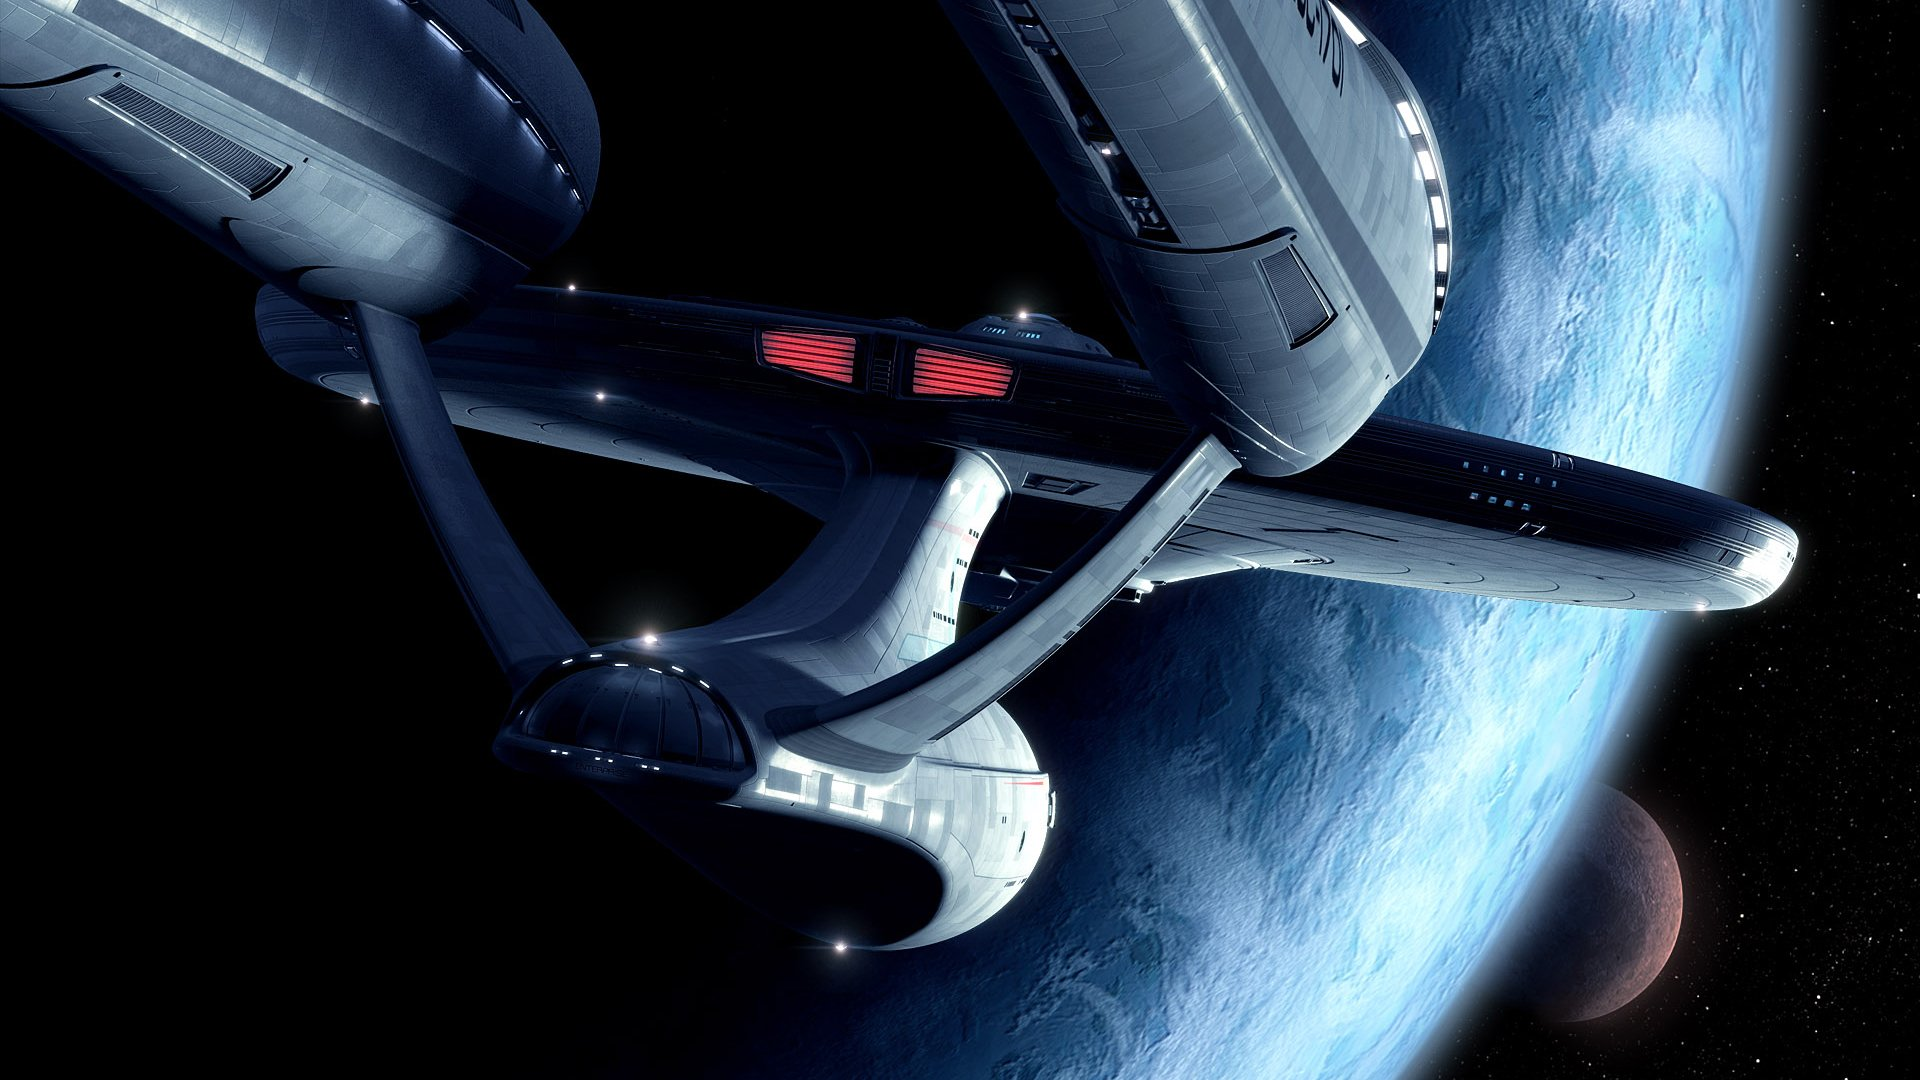 Sci Fi - Star Trek  Star_trek Star Wars Wallpaper